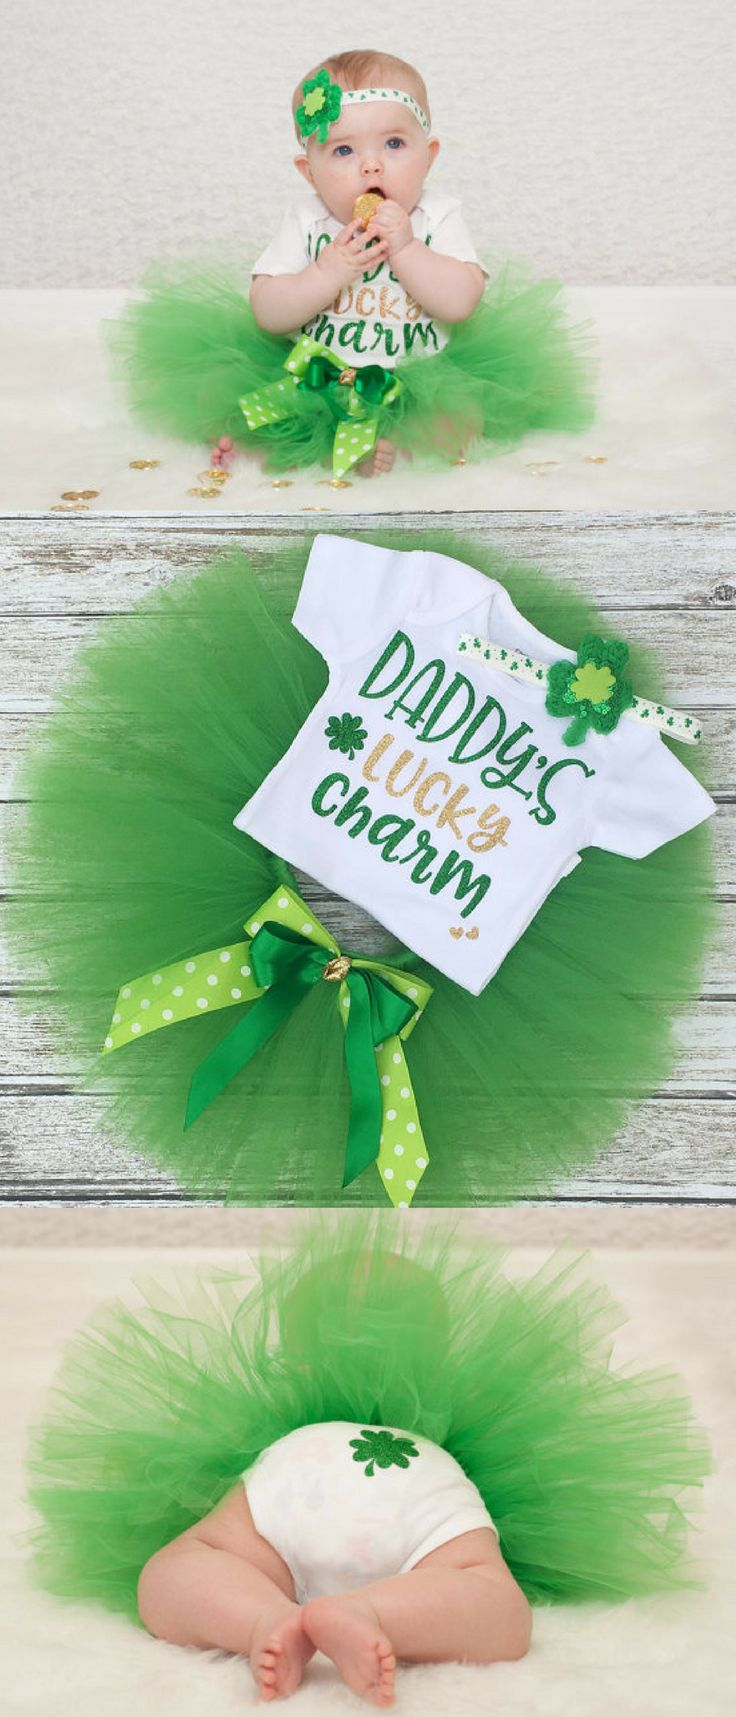 Love this little baby girl tutu outfit for St Patrick's Day! Daddy's lucky charm.... so cute! I totallly love the shamrock on the butt too, that's hilarious! #affiliate